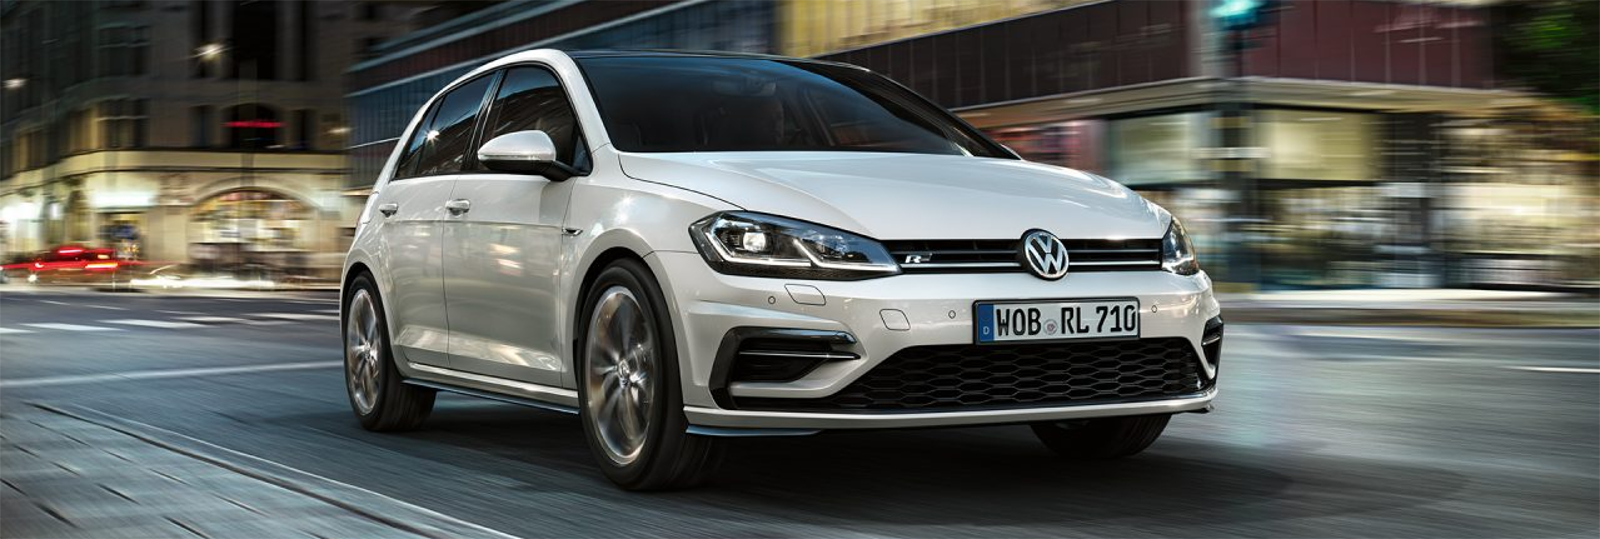 volkswagen golf blanco